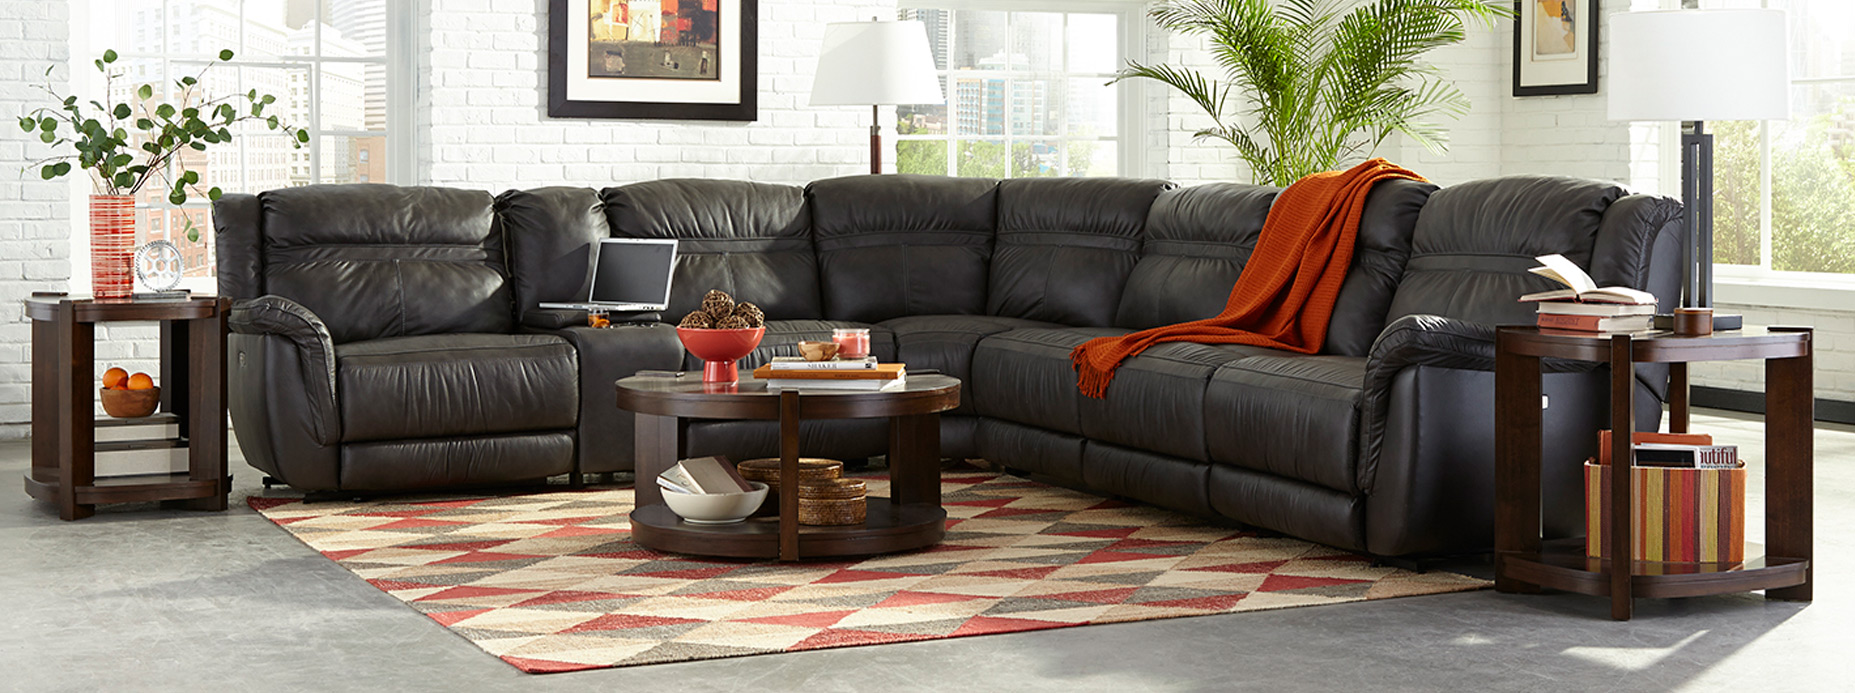 Lane Furniture at Hickory Park Furniture Galleries